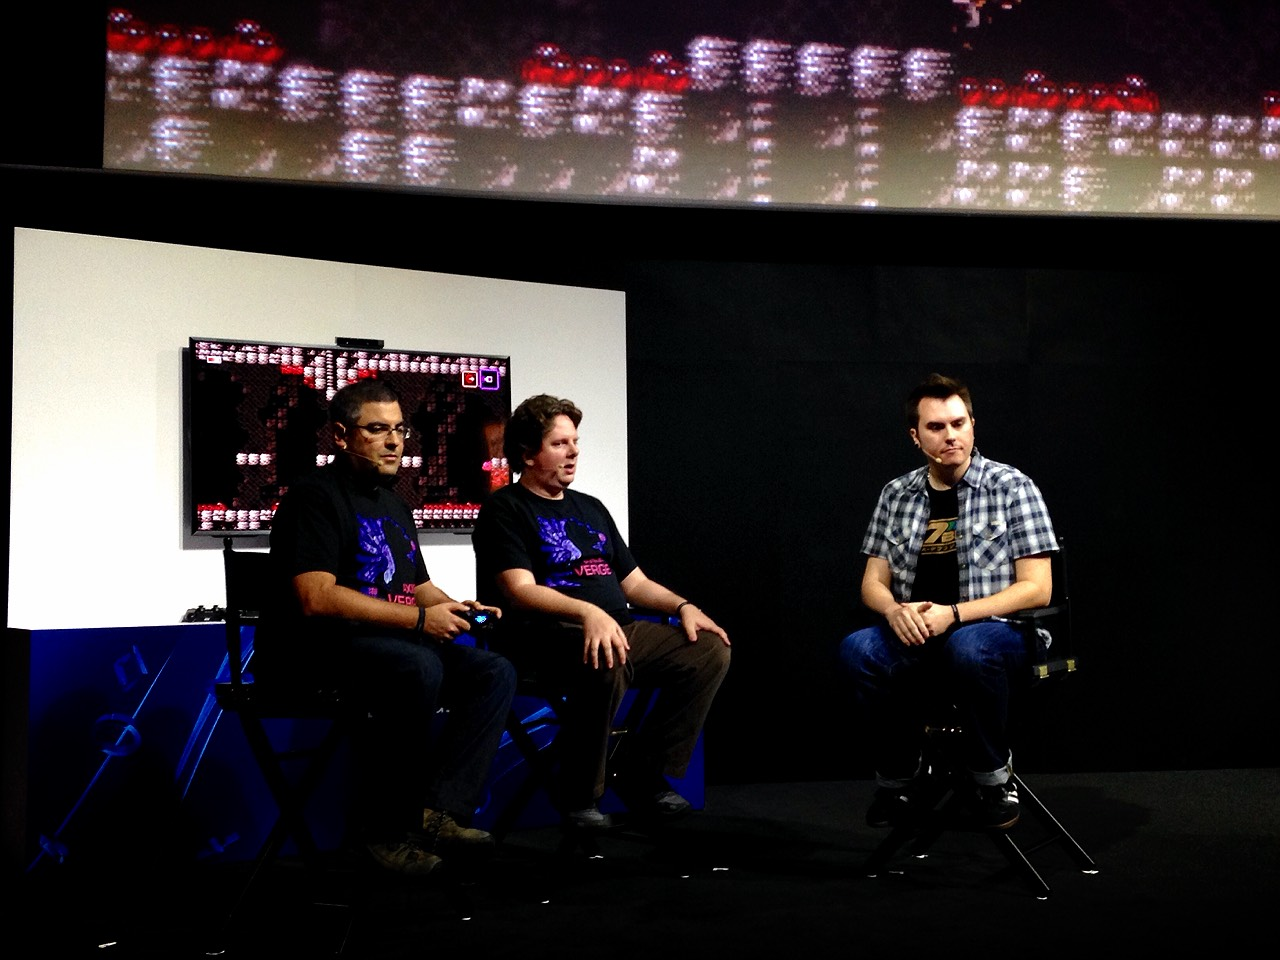 Dan and I did a Twitch LiveCast on stage with Justin interviewing us.  The game was huge on the screen behind us.